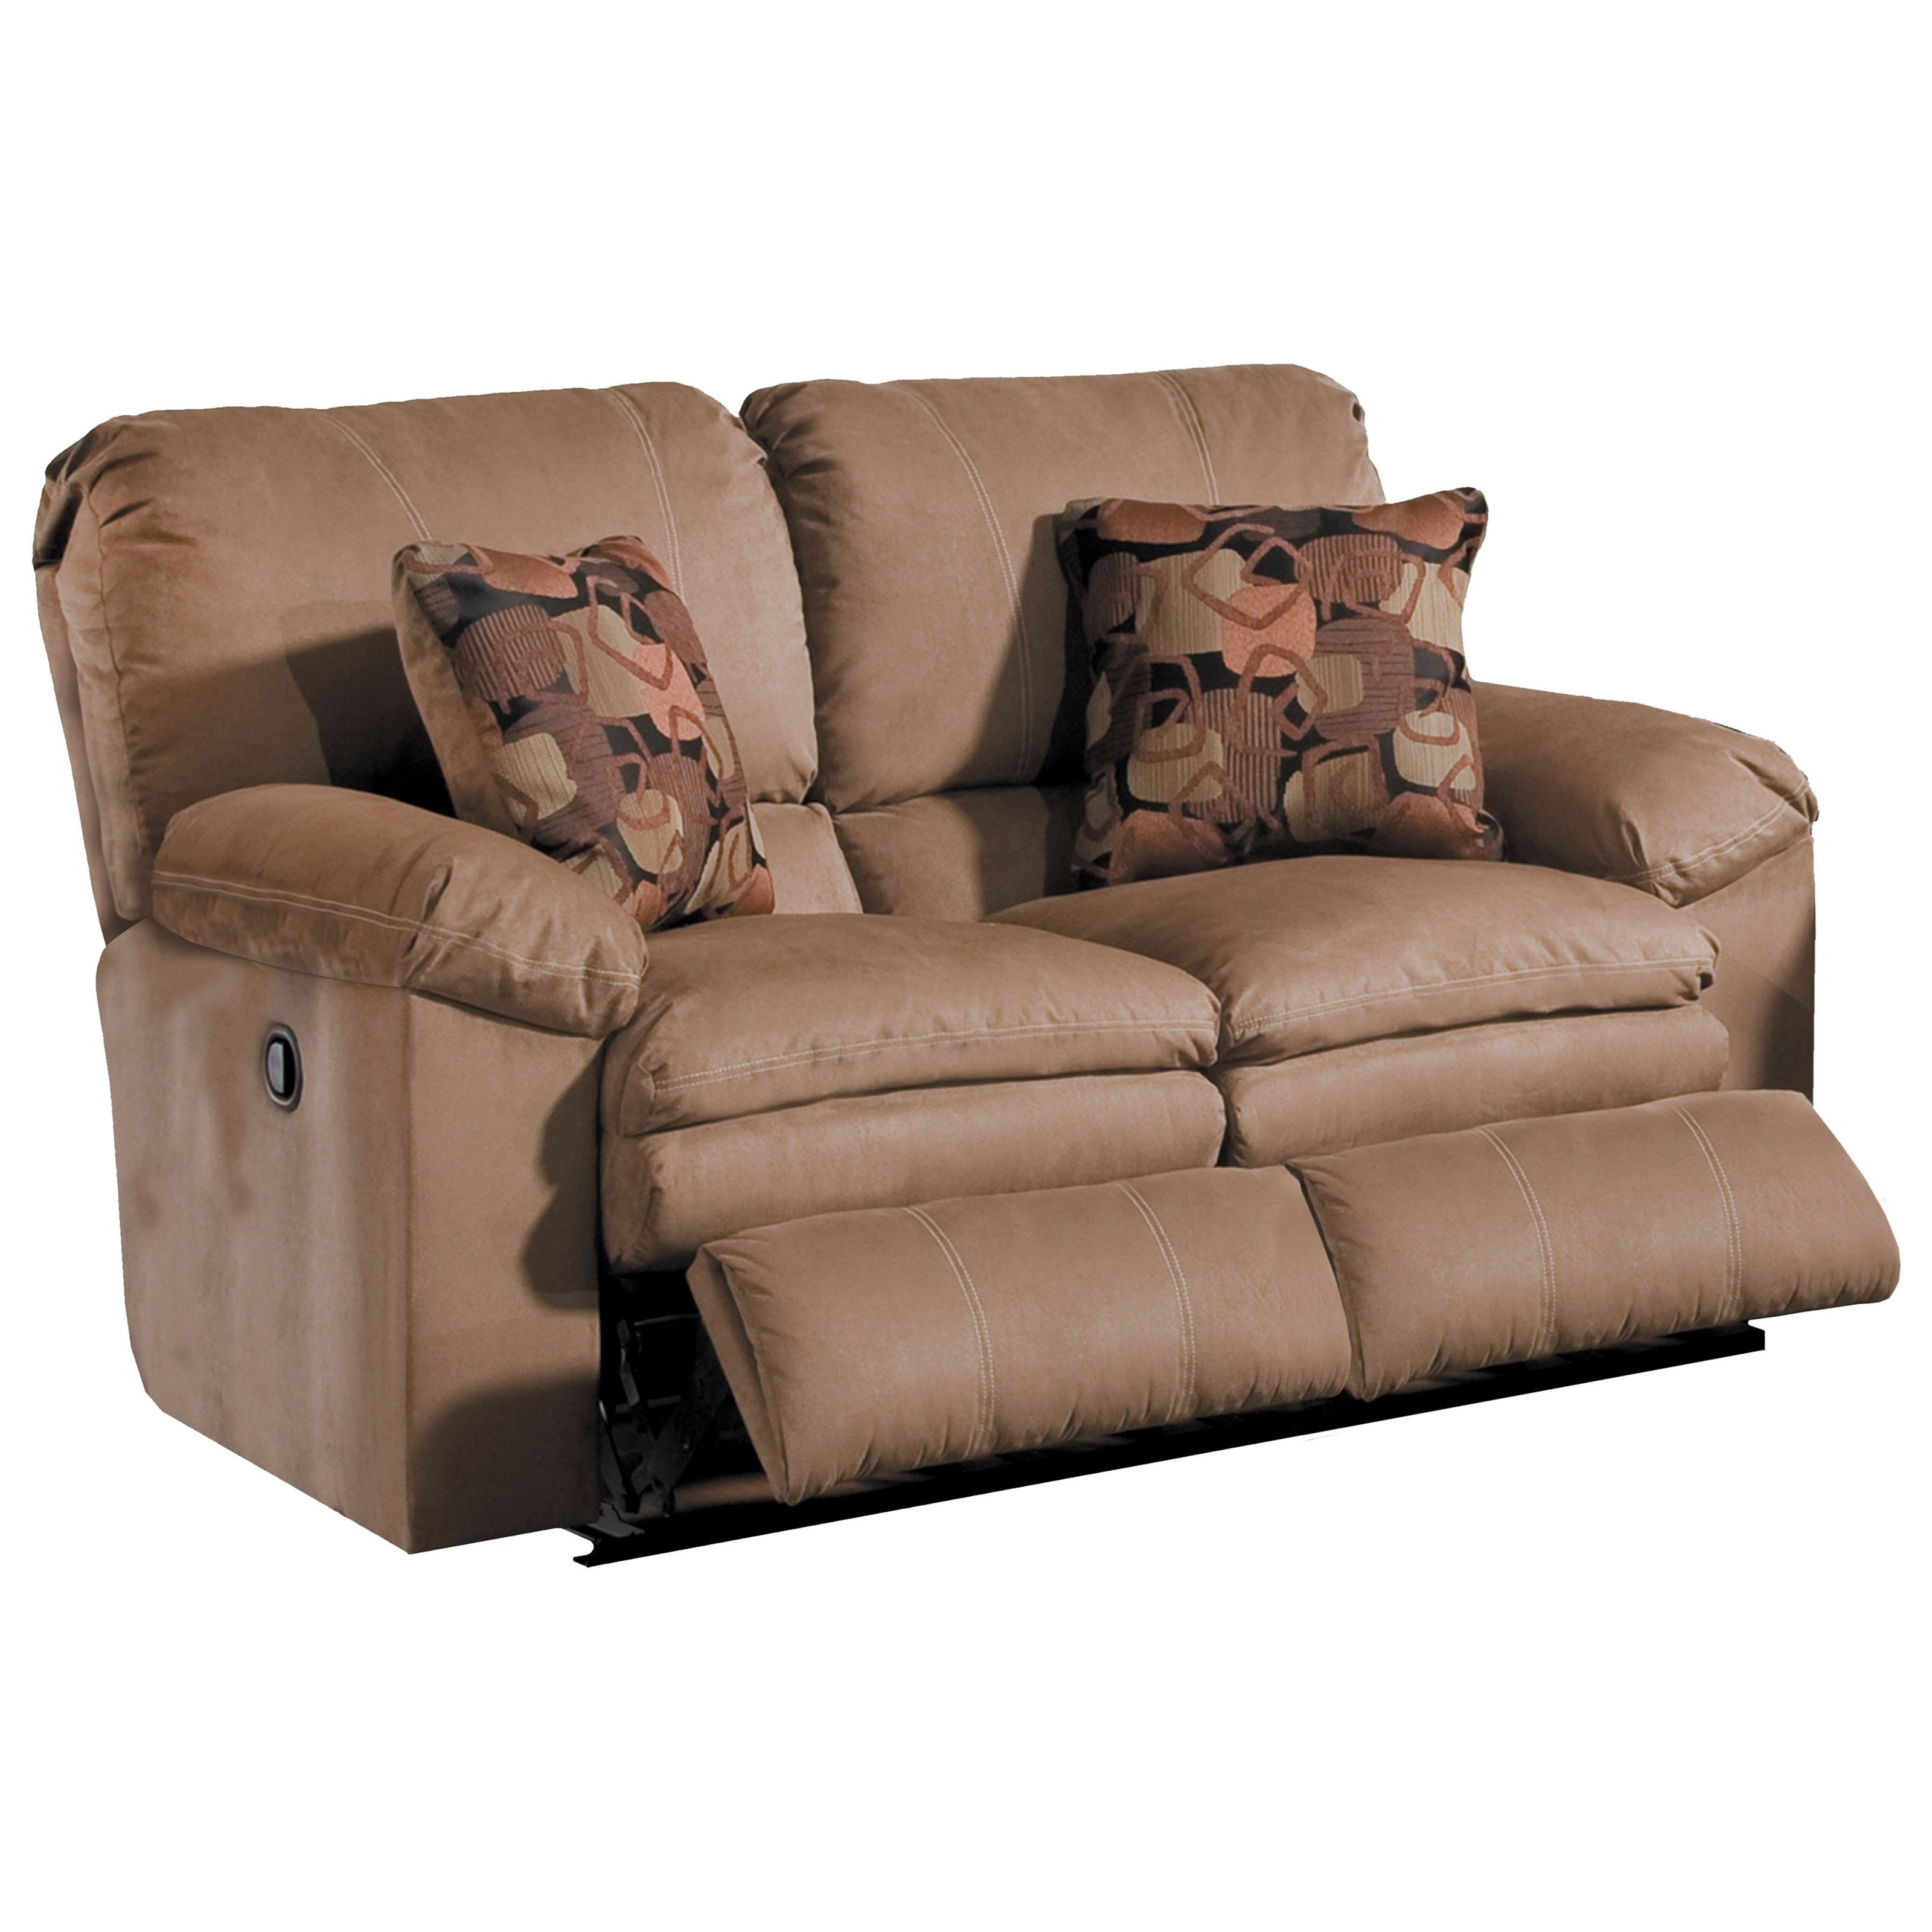 Power Reclining Loveseat With Pillow Arms By Catnapper